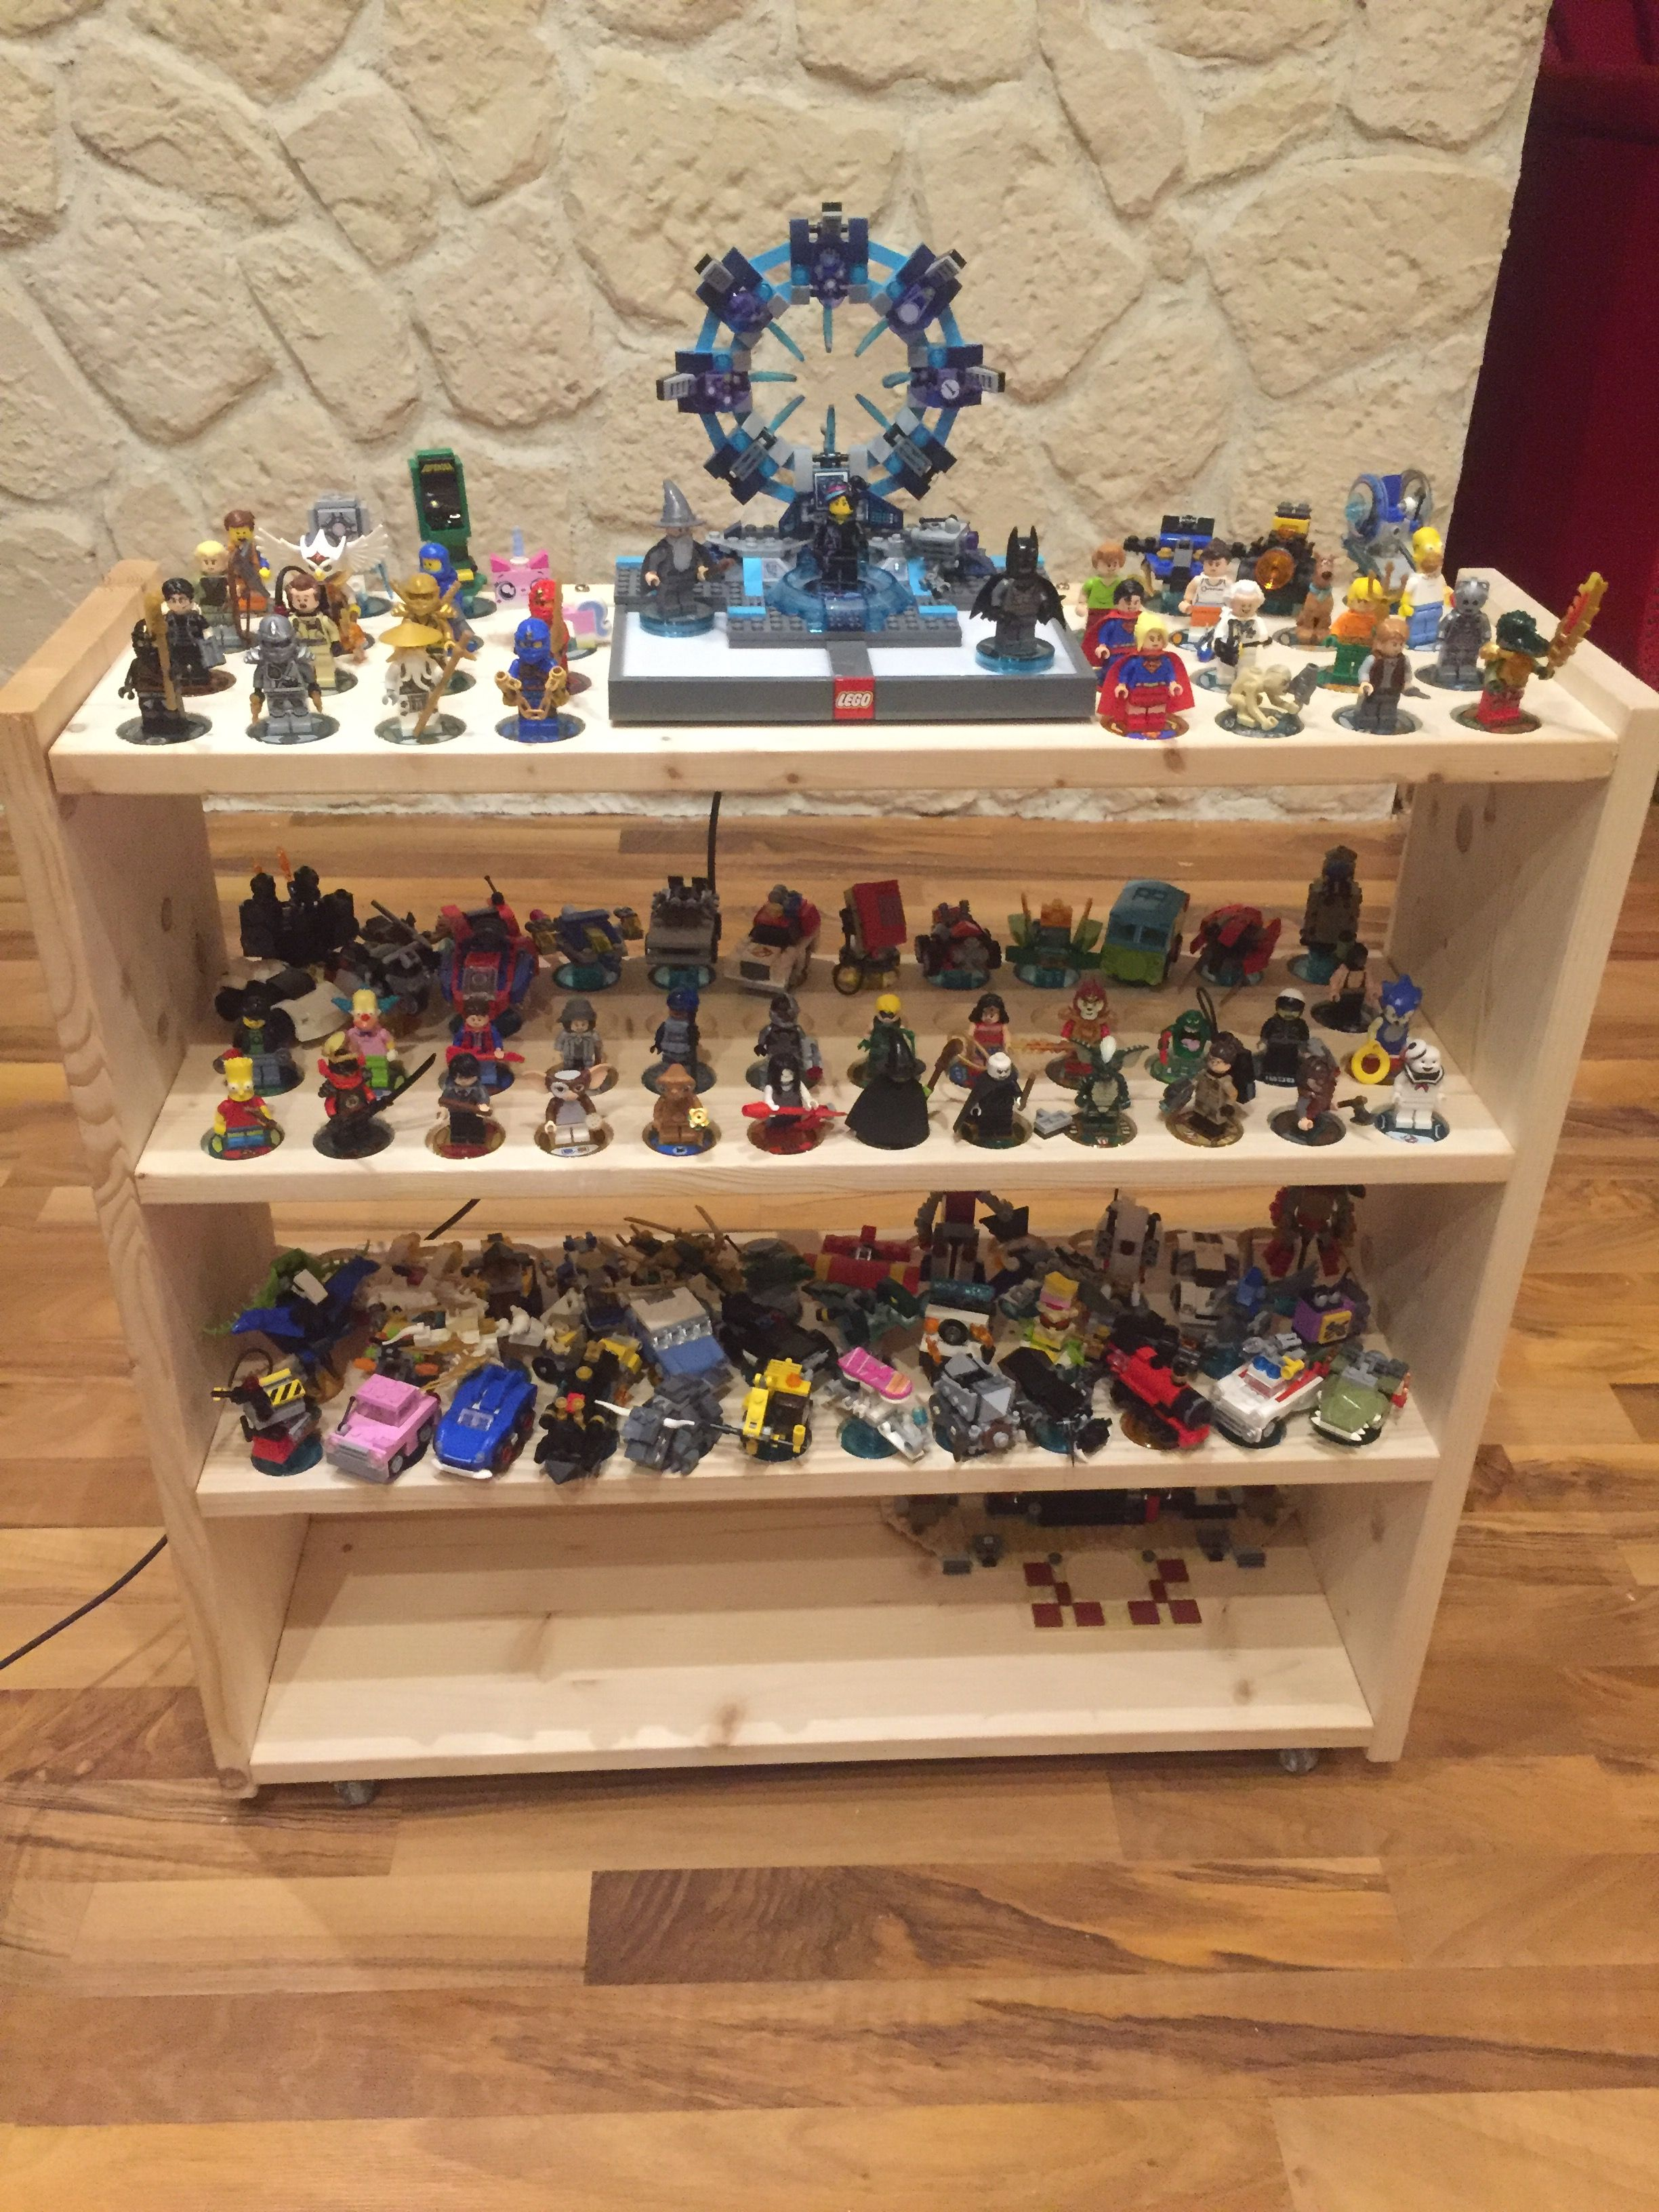 Selfmade Möbel My Selfmade Lego Dimensions Storage On Wheels There 39s